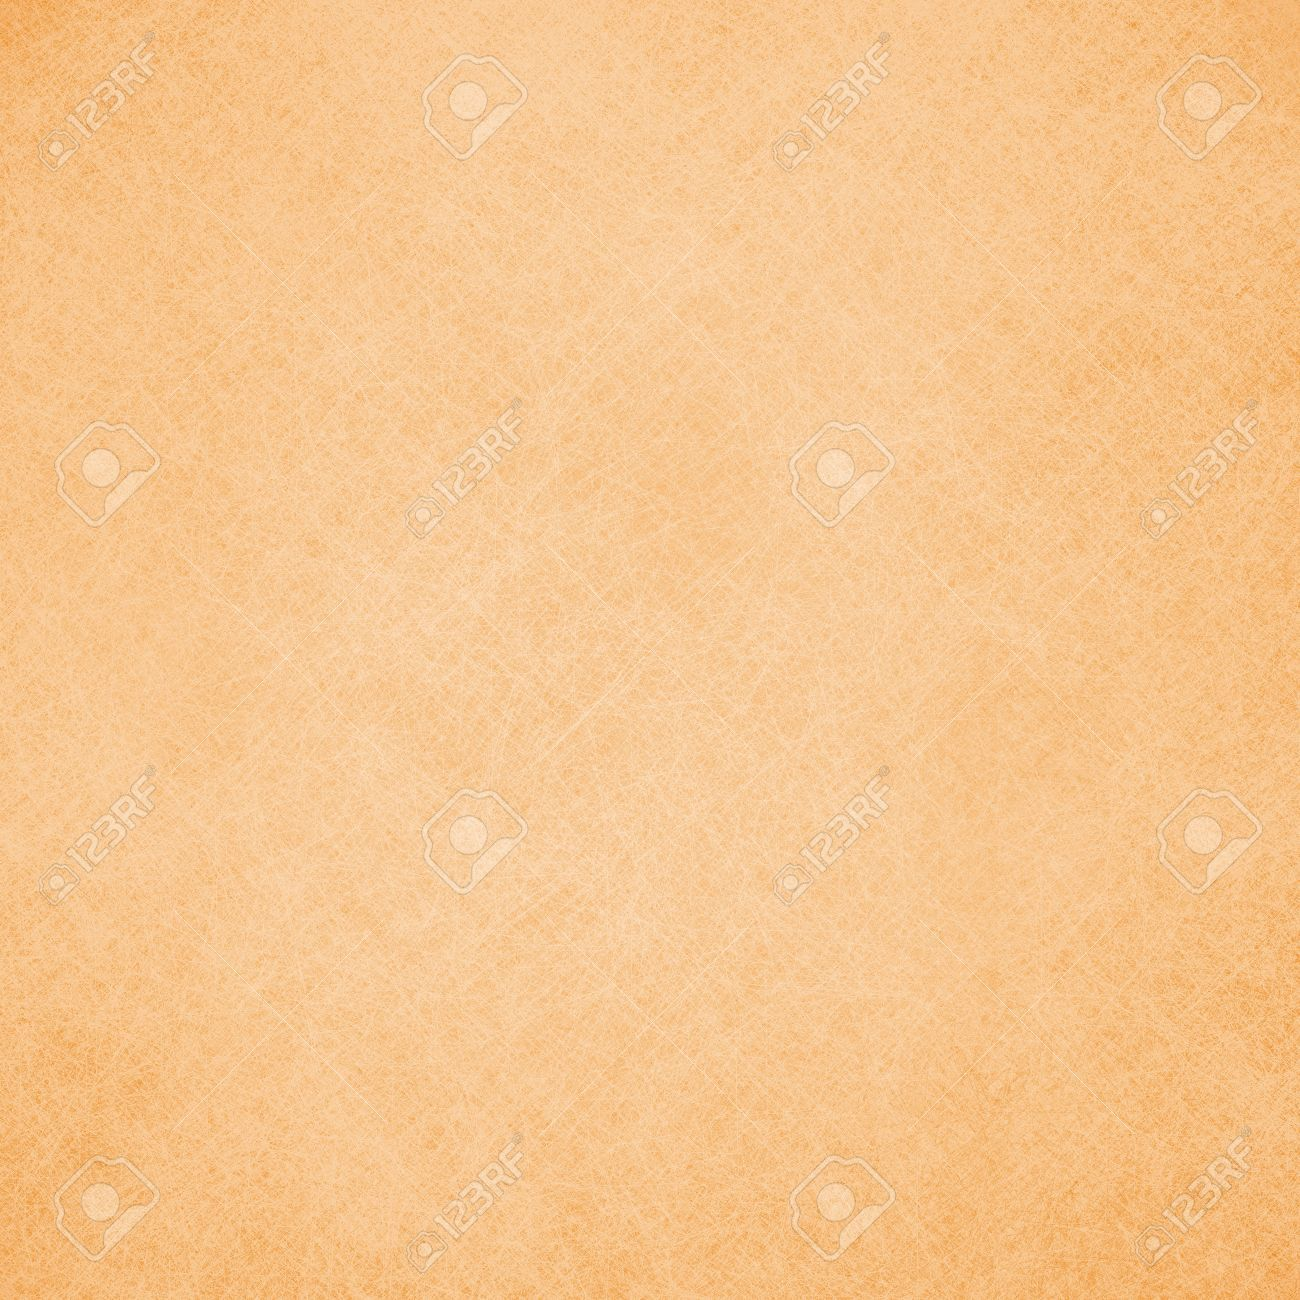 Abstract Plain Orange Background Peach Color Soft Faded Vintage Orange Background Peach Colors Peach